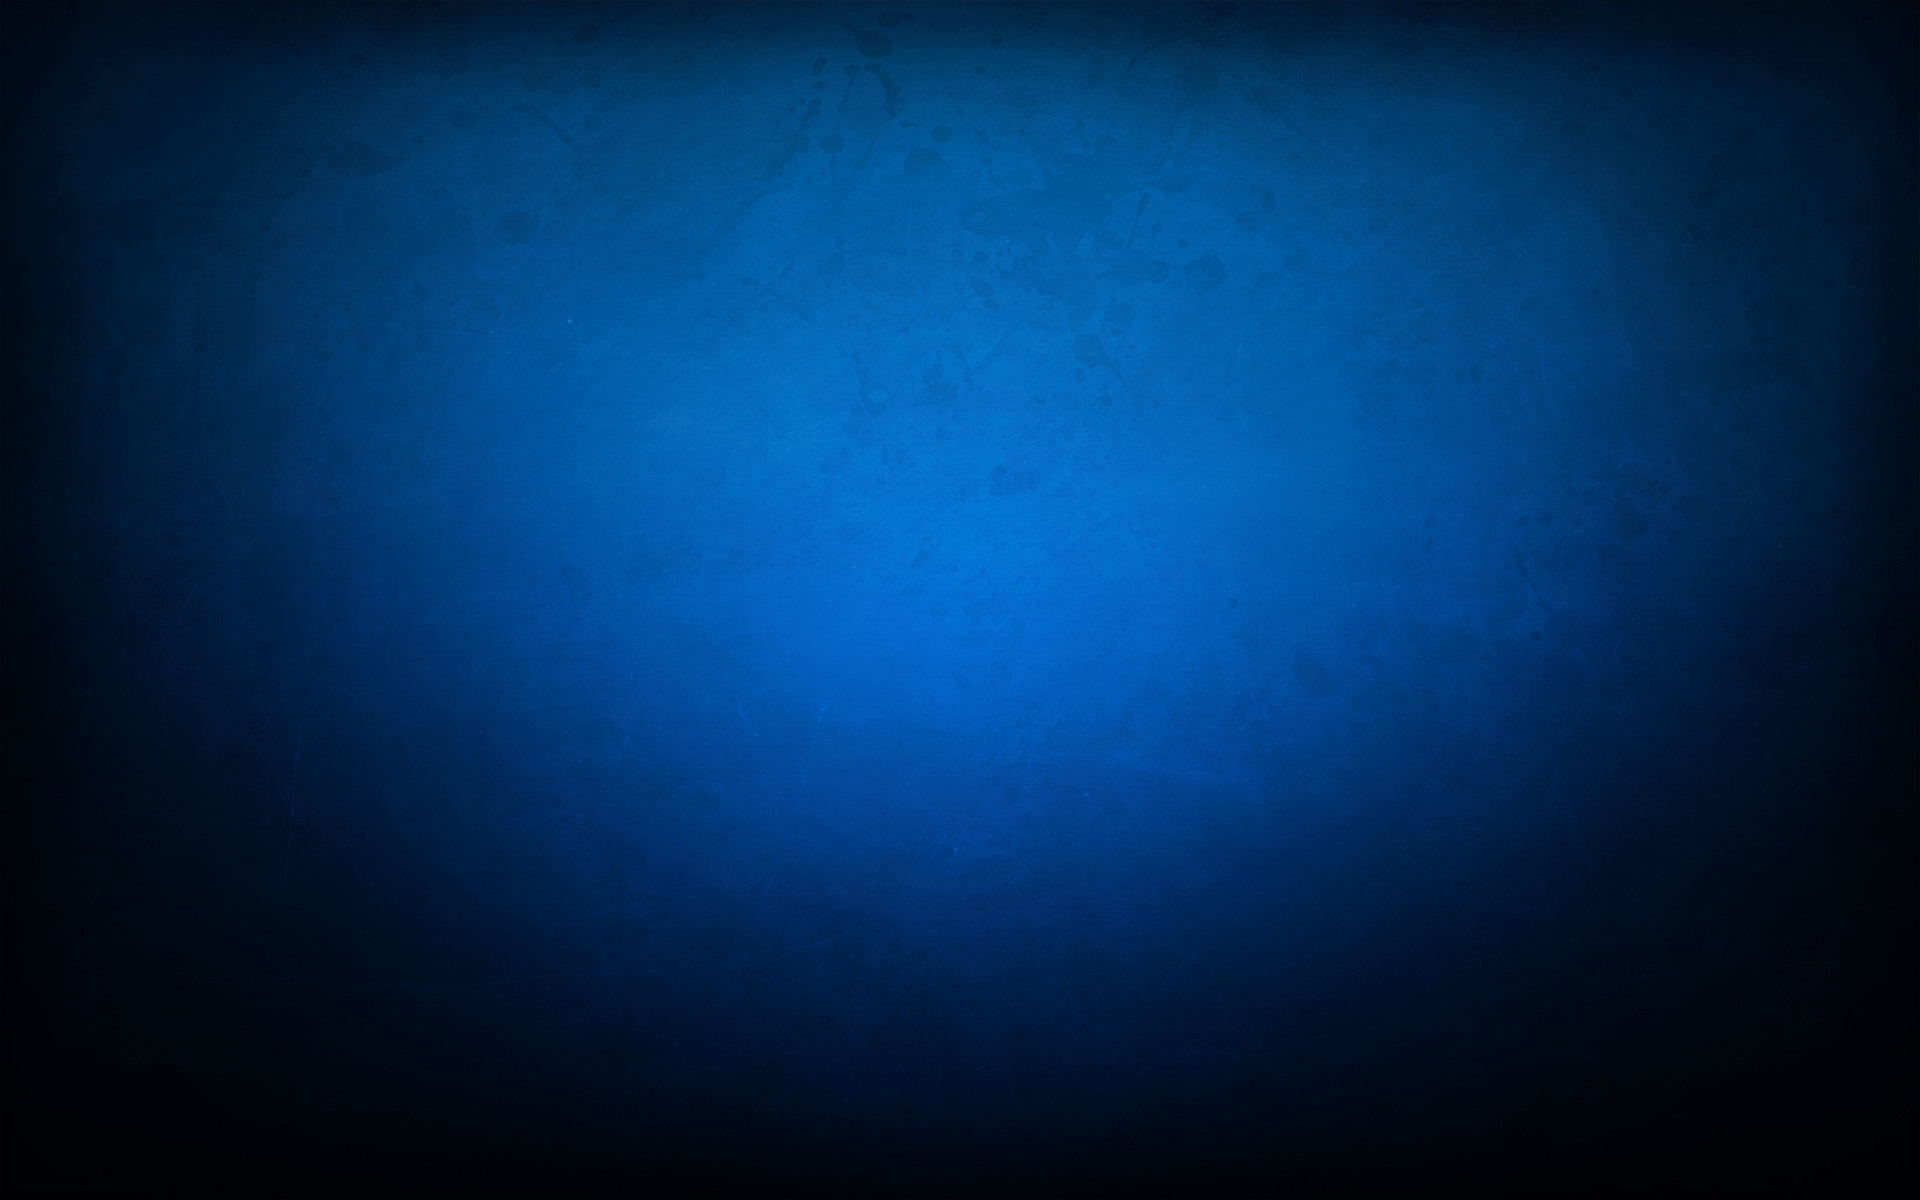 Grungy Blue HD Wallpaper Theme Bin   Customization HD Wallpapers 1920x1200